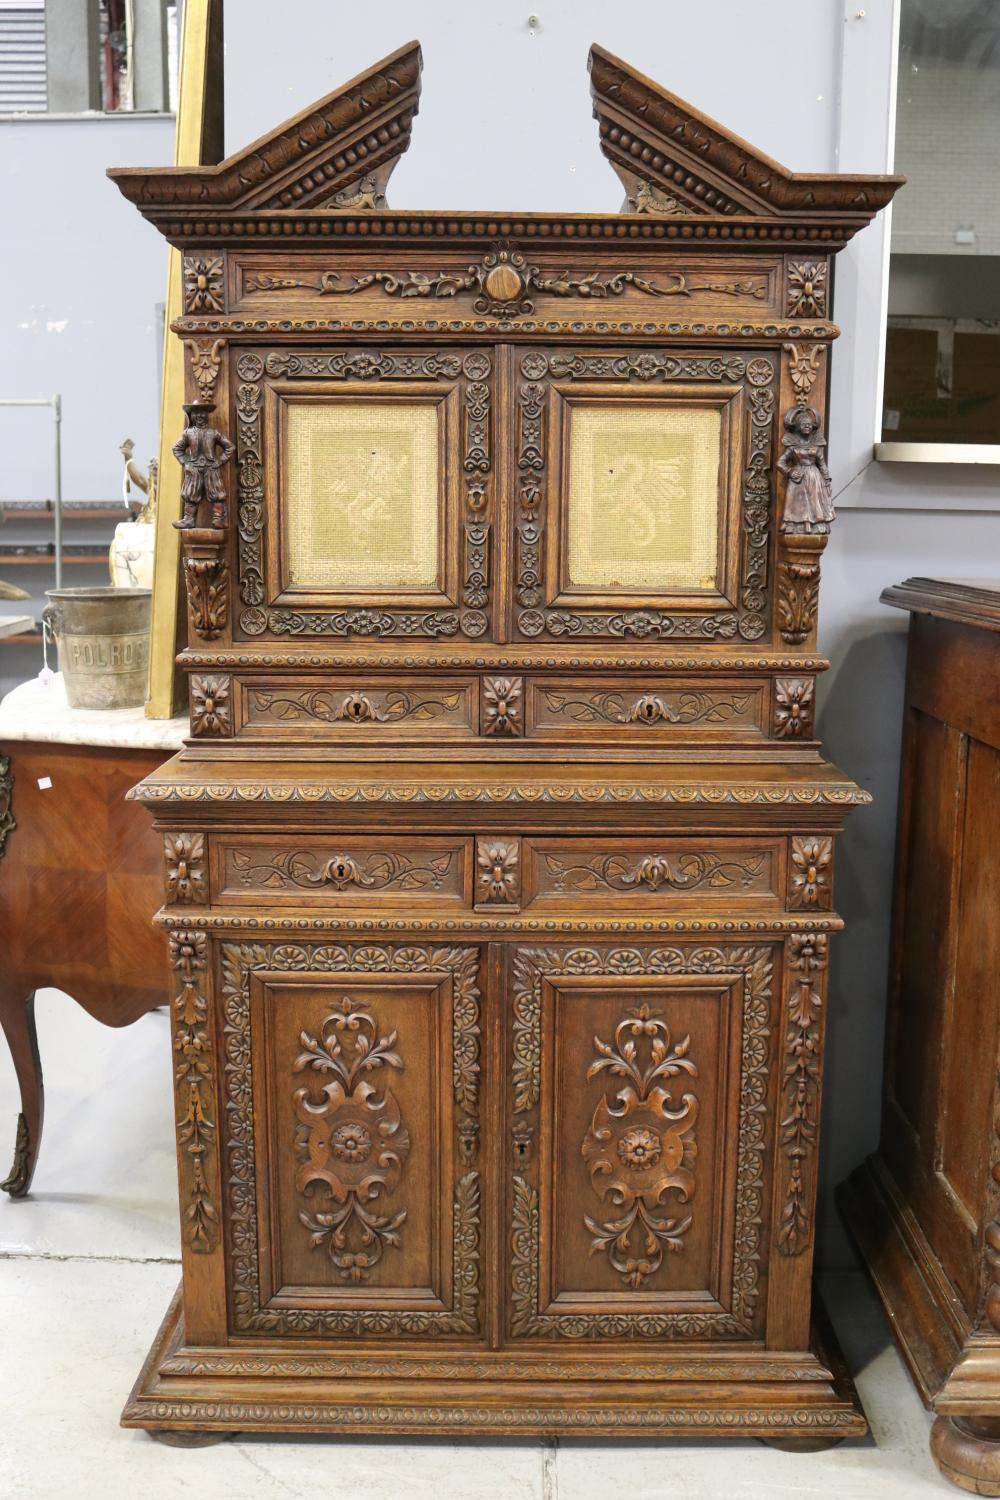 Antique French Renaissance revival buffet a deux corps, needlework panels of mythical beasts, heavily carved, approx 174cm H x 97cm W x 47cm D